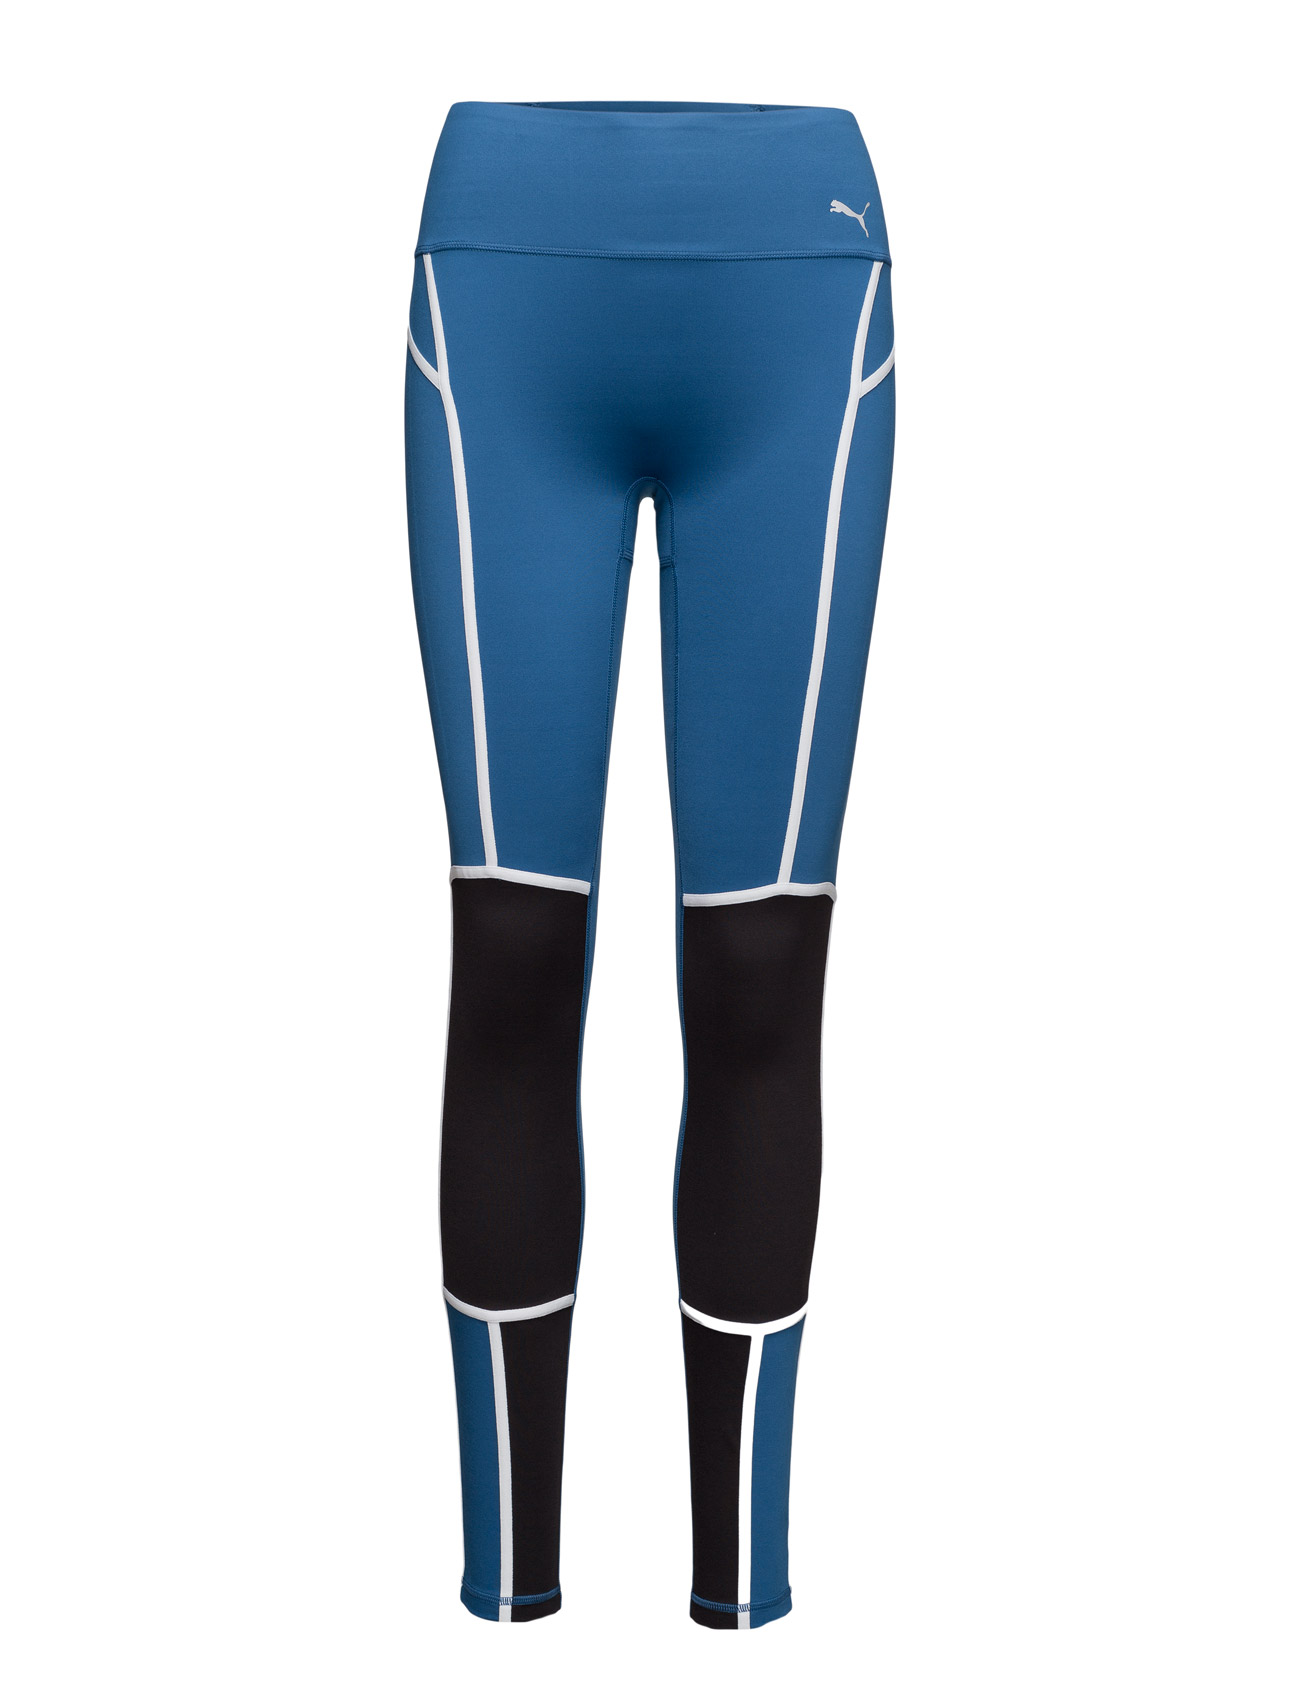 Pwrshape Tight PUMA SPORT Trænings leggings til Damer i